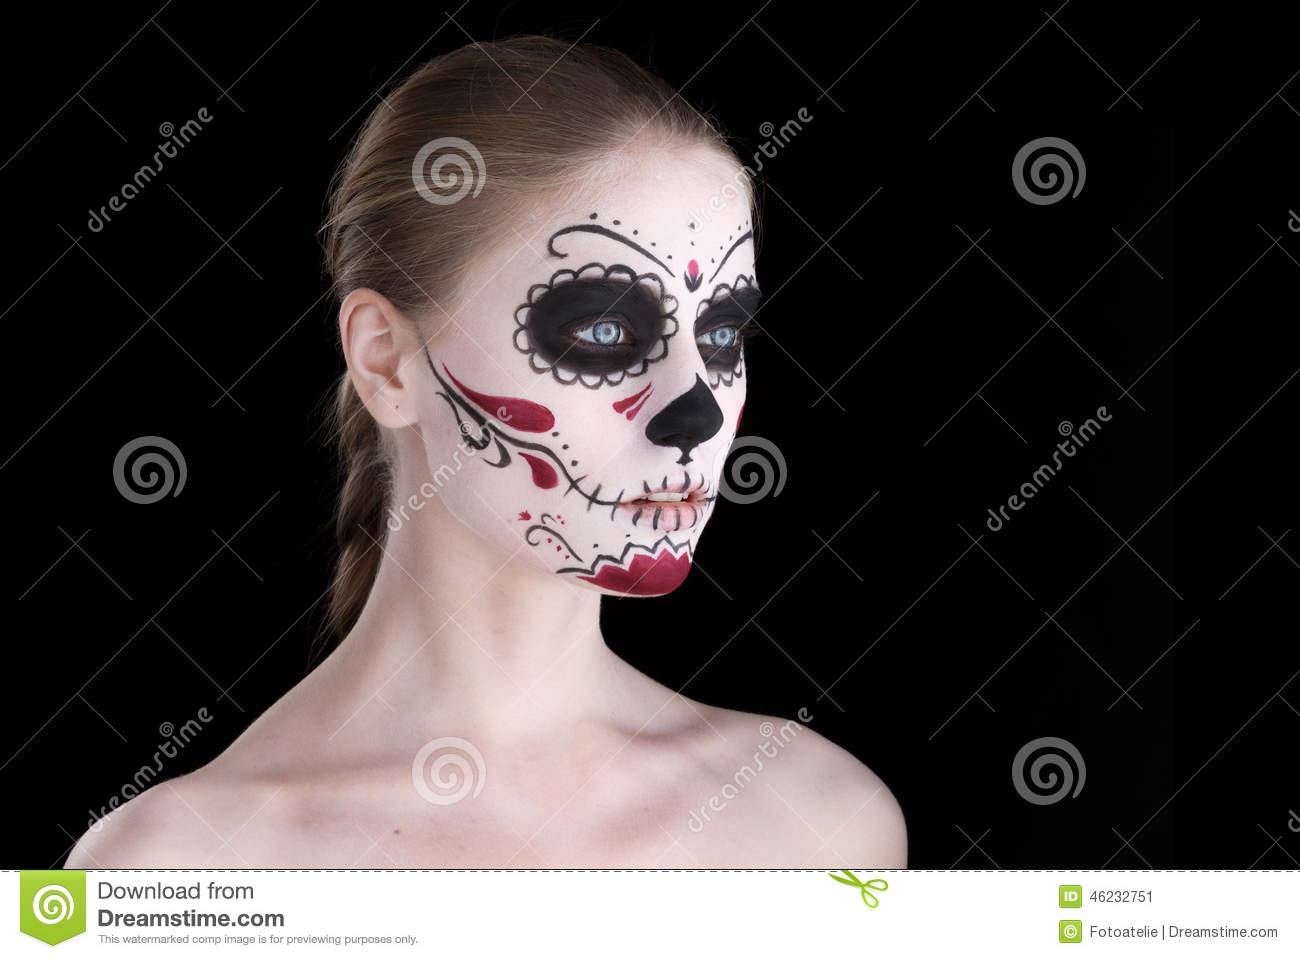 woman dia de los muertos makeup stock photos 286 images. Black Bedroom Furniture Sets. Home Design Ideas